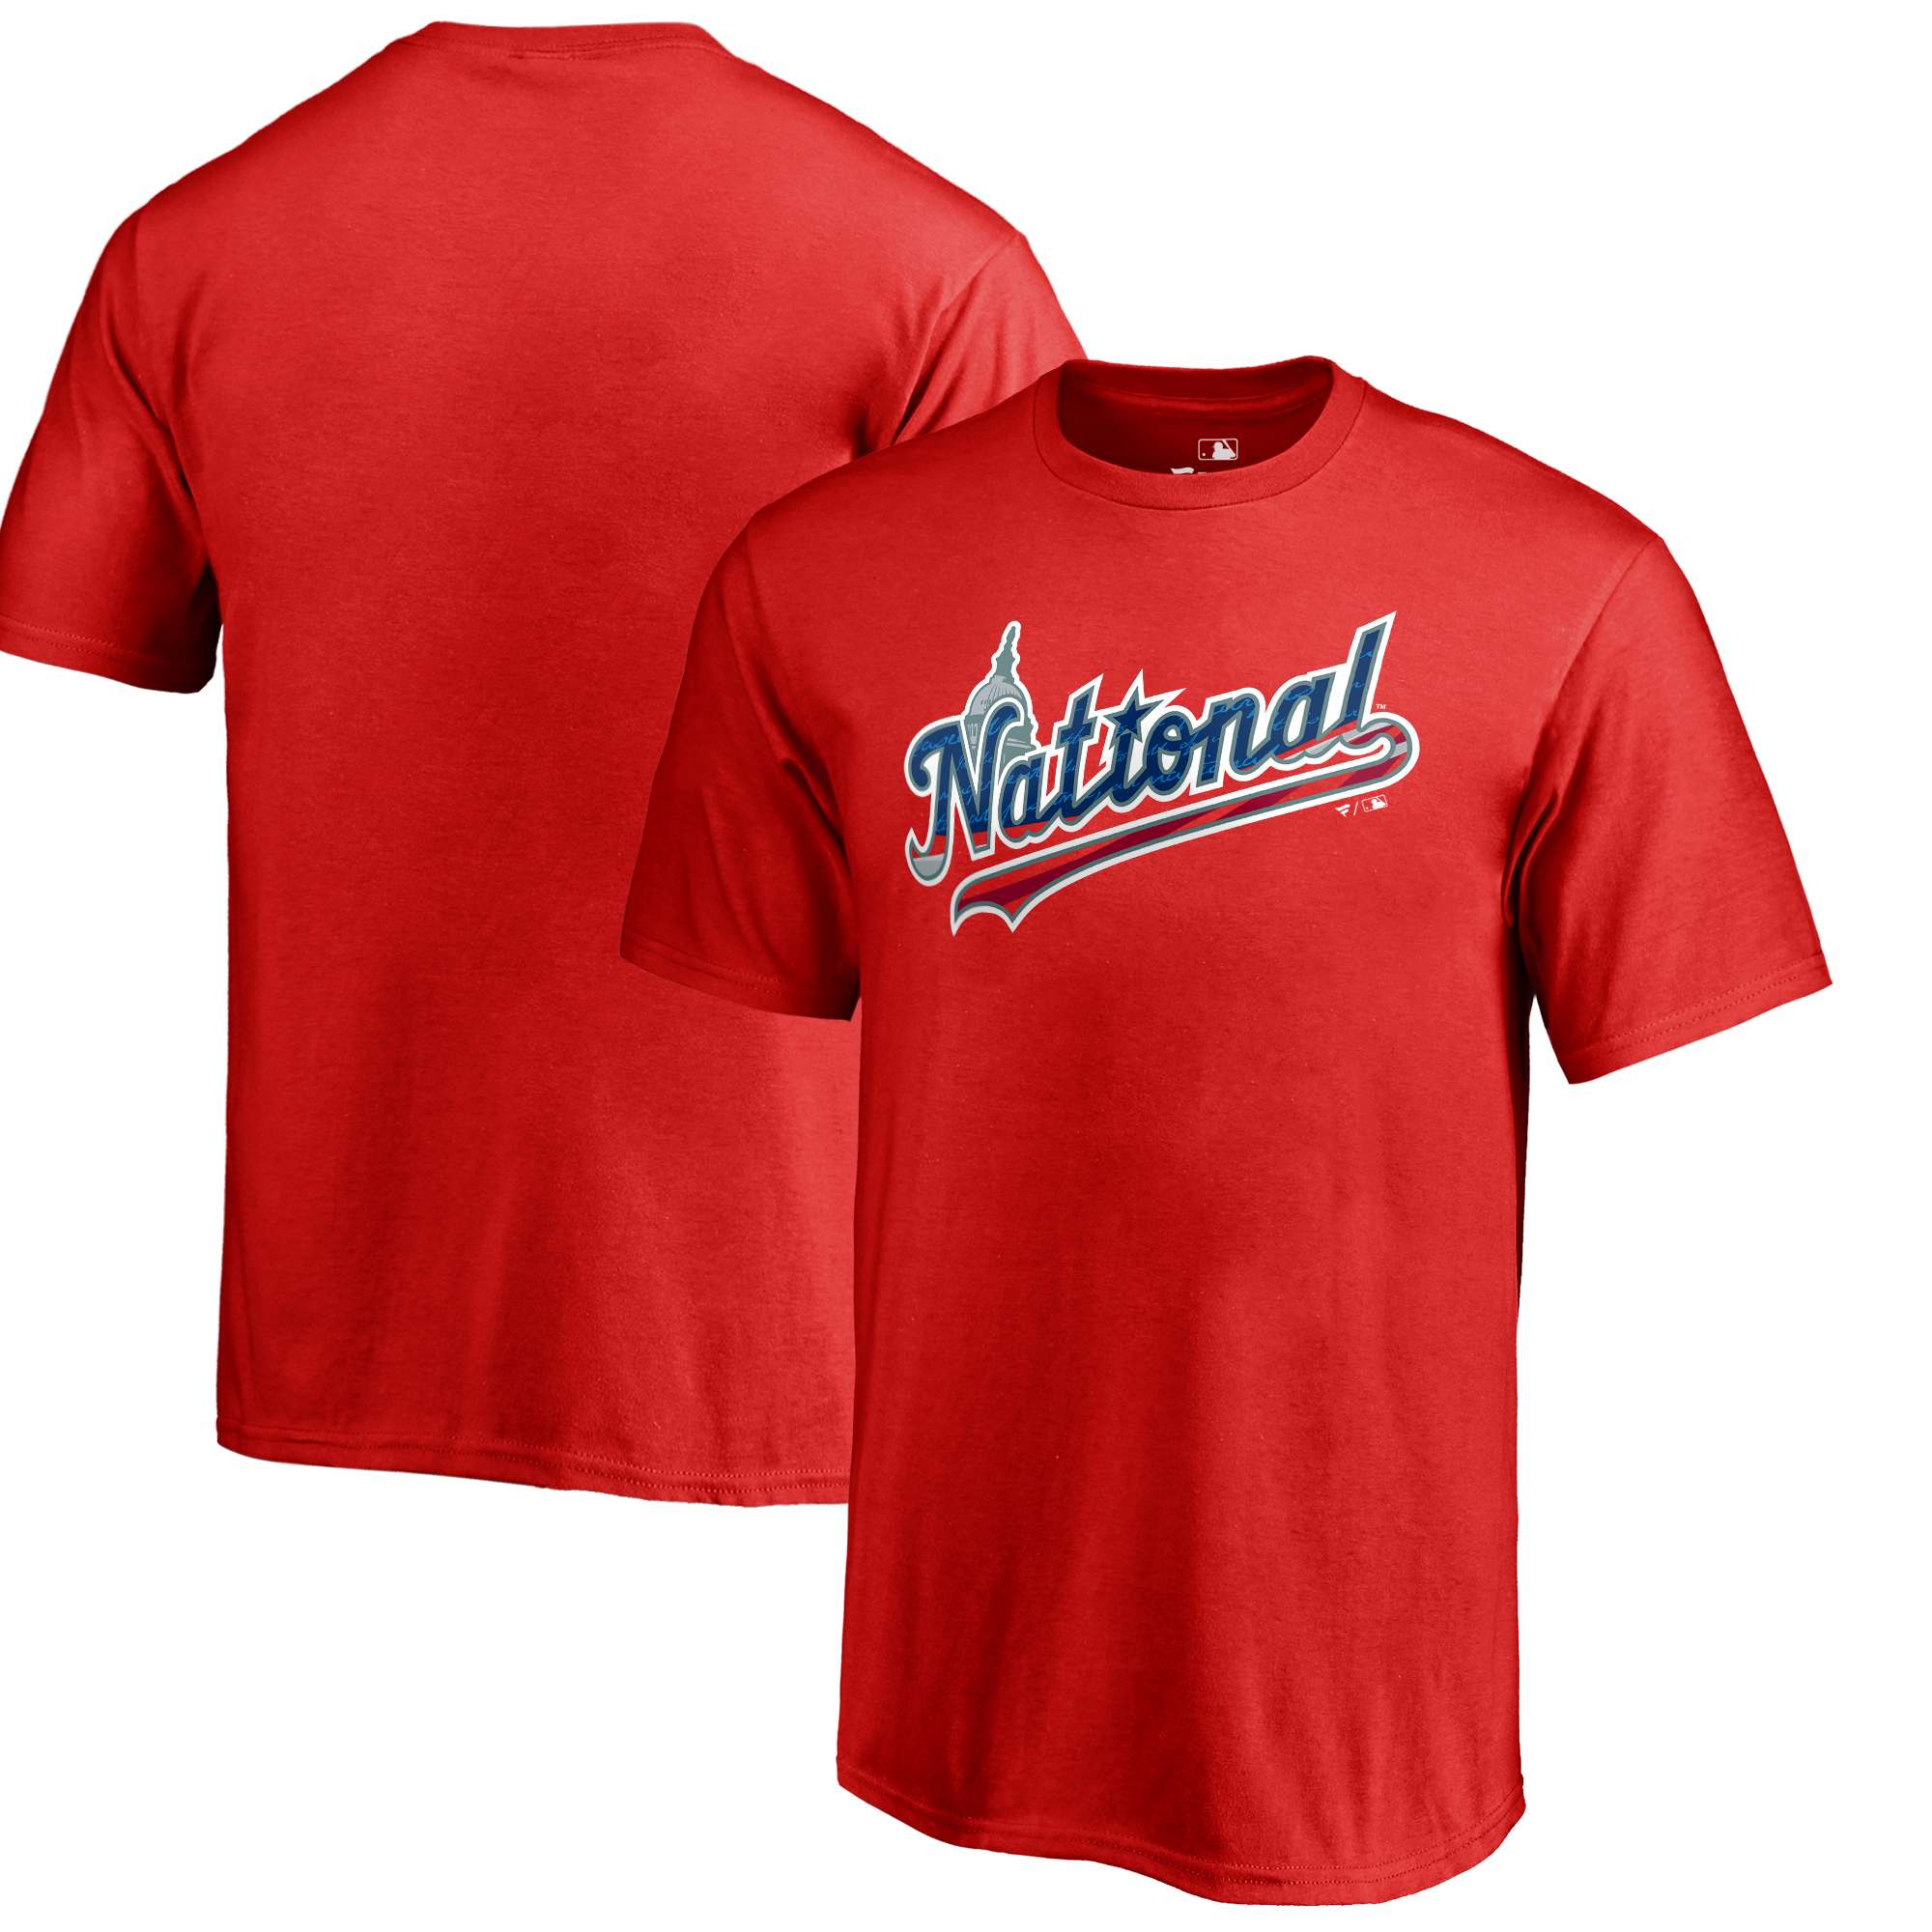 Youth Fanatics Branded 2018 All-Star Game National League T-Shirt - Red